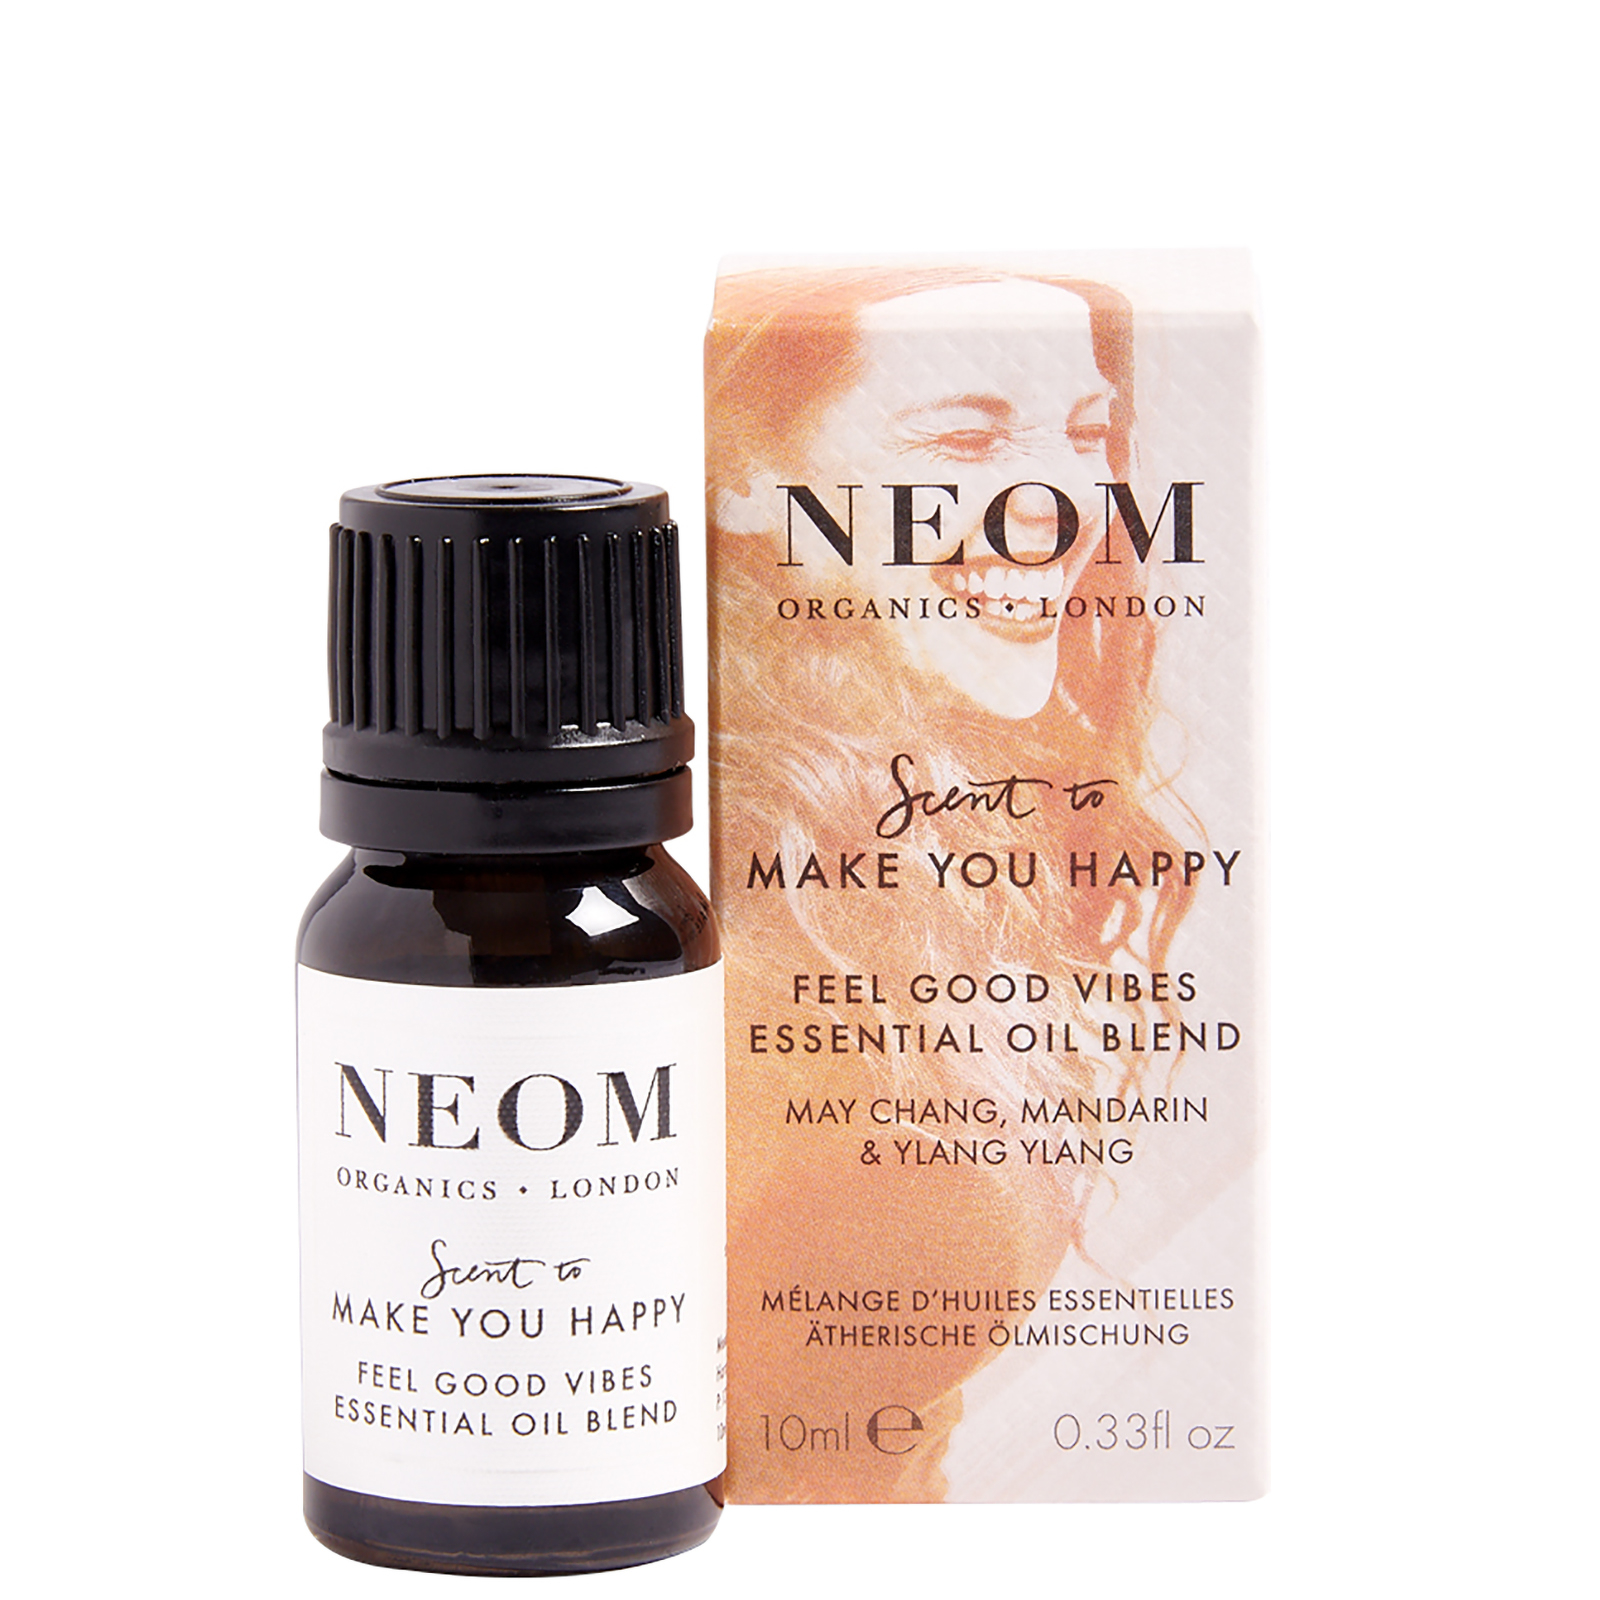 Neom Organics London Scent To Make You Happy Feel Good Vibes Essential Oil Blend 10ml